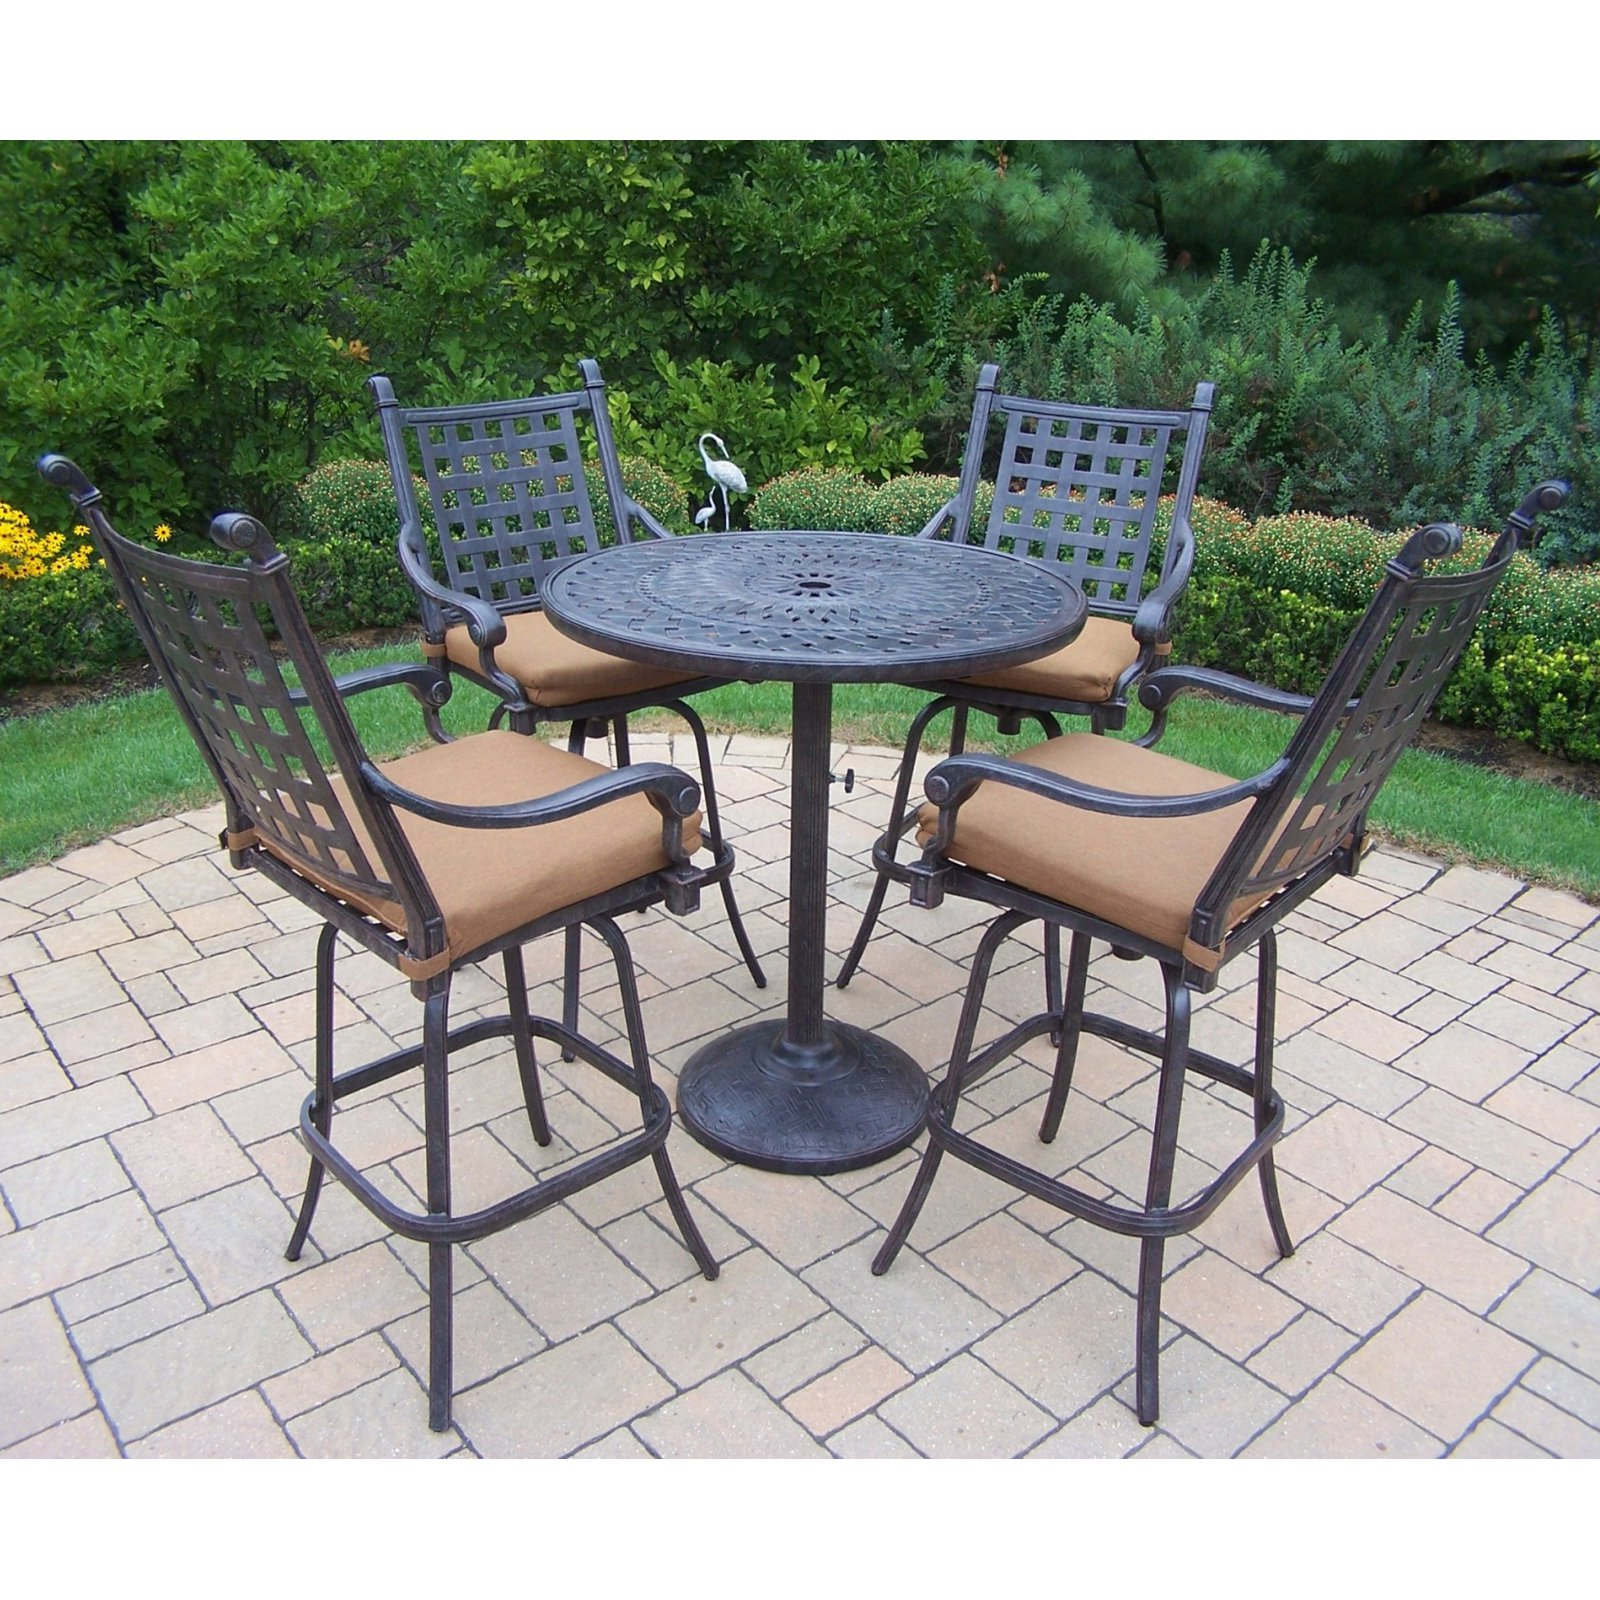 Oakland Living Belmont 5 Piece Bar Height Patio Dining Set ... on Oakland Living Patio Sets id=45380